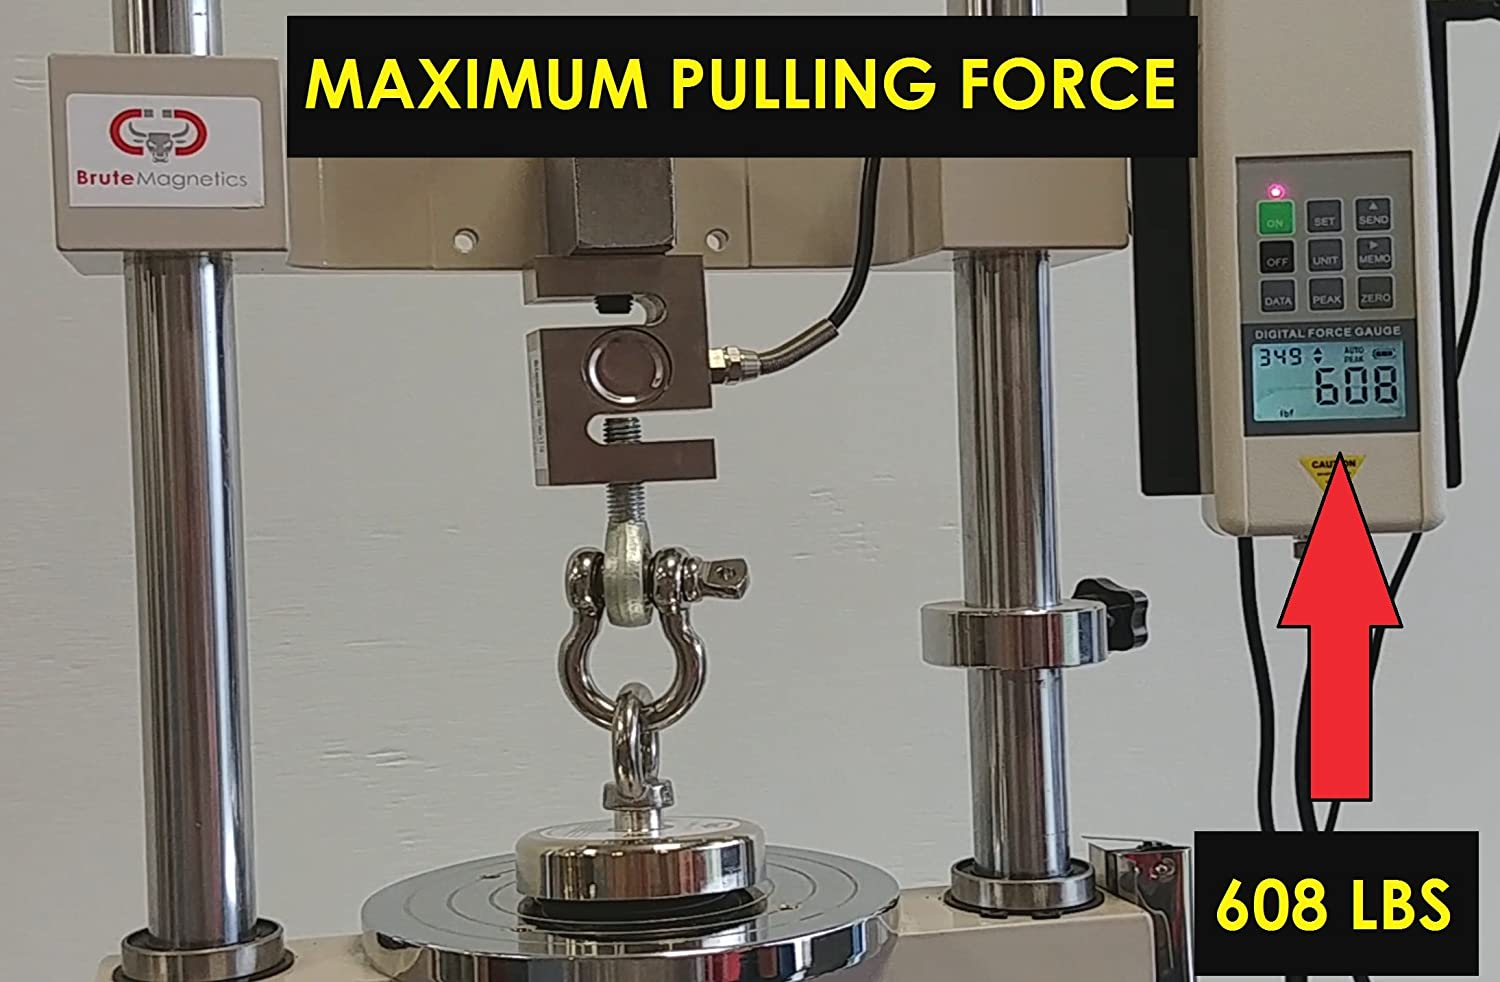 375 lbs Pulling Force 2.95 Diameter Brute Magnetics Round Neodymium Magnet with Eyebolt Magnet Fishing